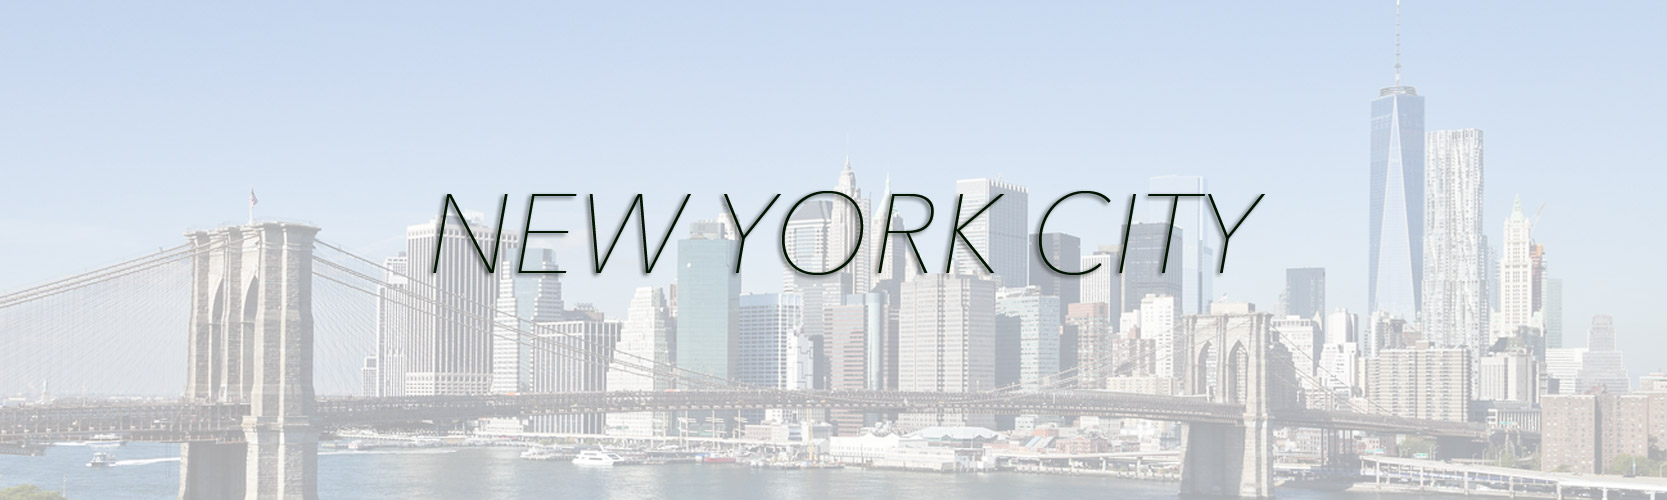 Shipping Futons, Sofa Beds, and Other Futon Shop products to NEW YORK